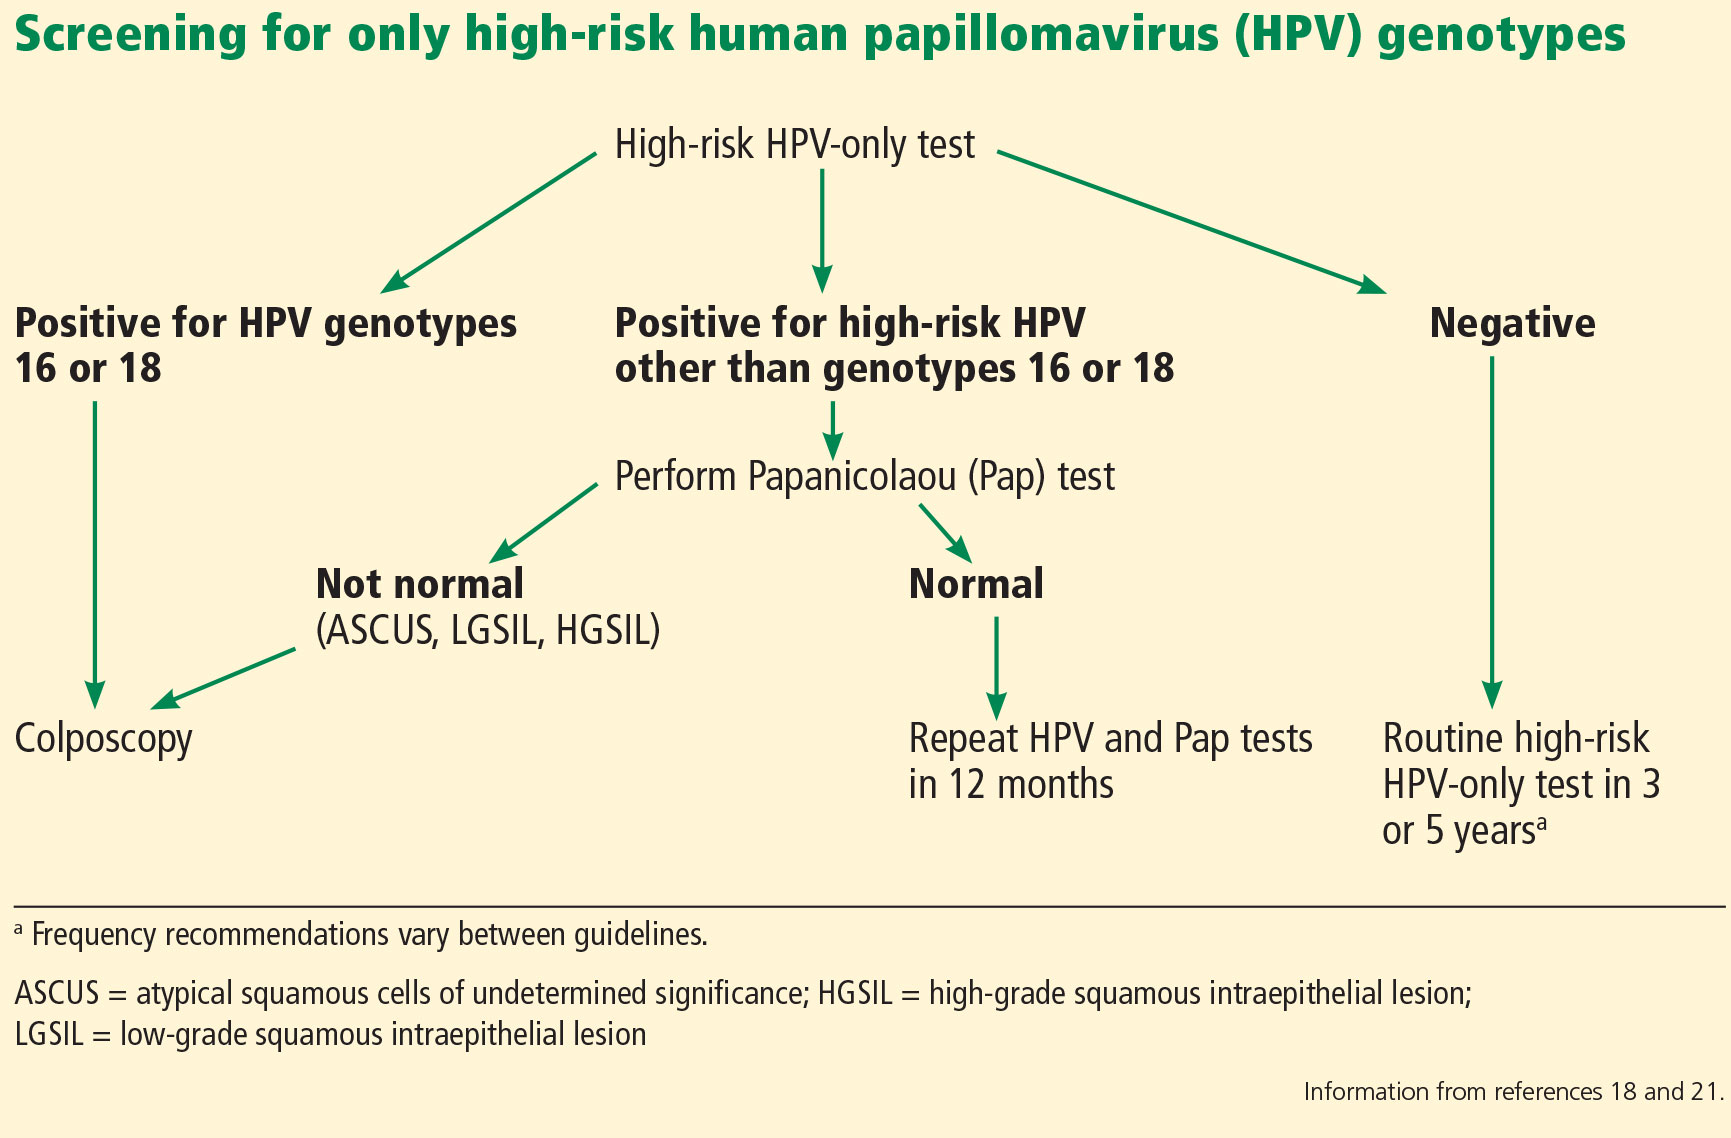 hpv high risk non 16 18 detected)